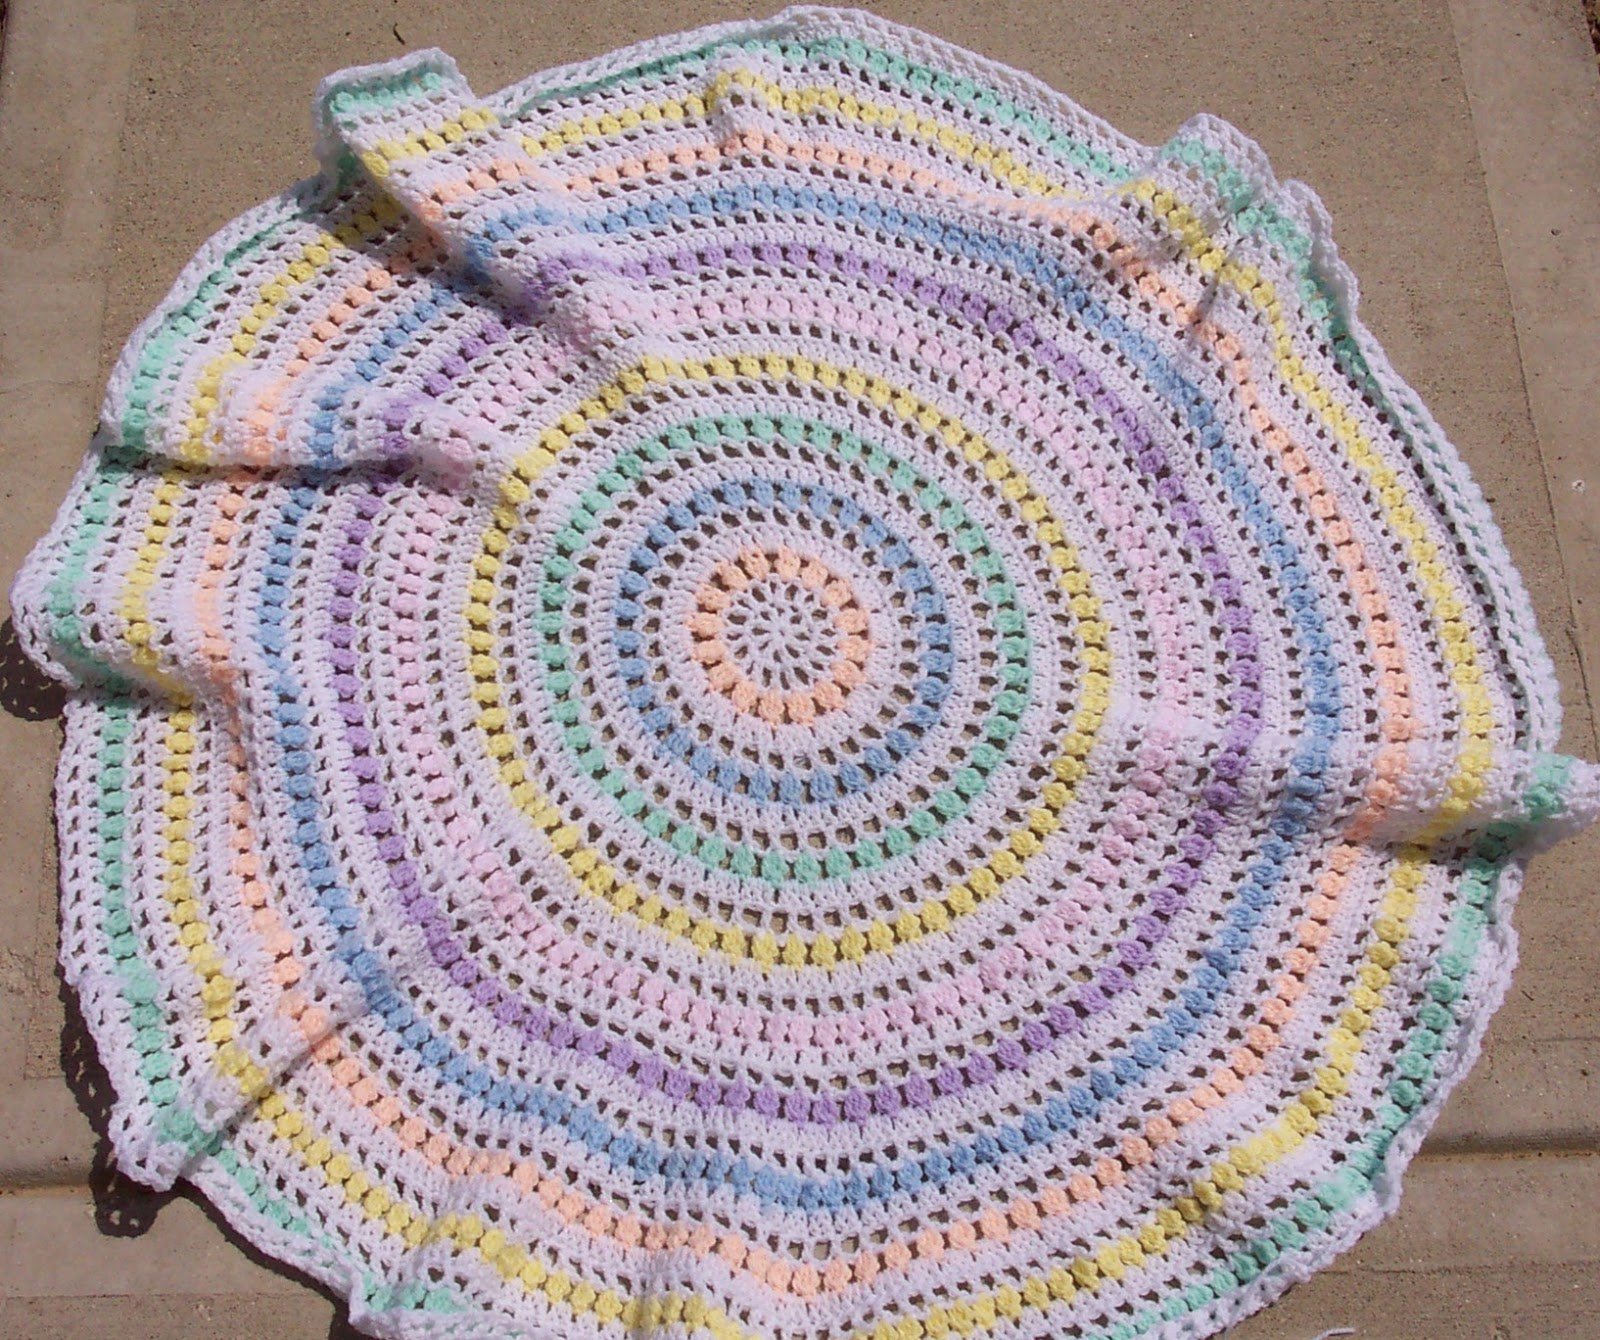 Crochet Patterns For Round Baby Blankets : SmoothFox Crochet and Knit: SmoothFoxs Spring Circle Of ...